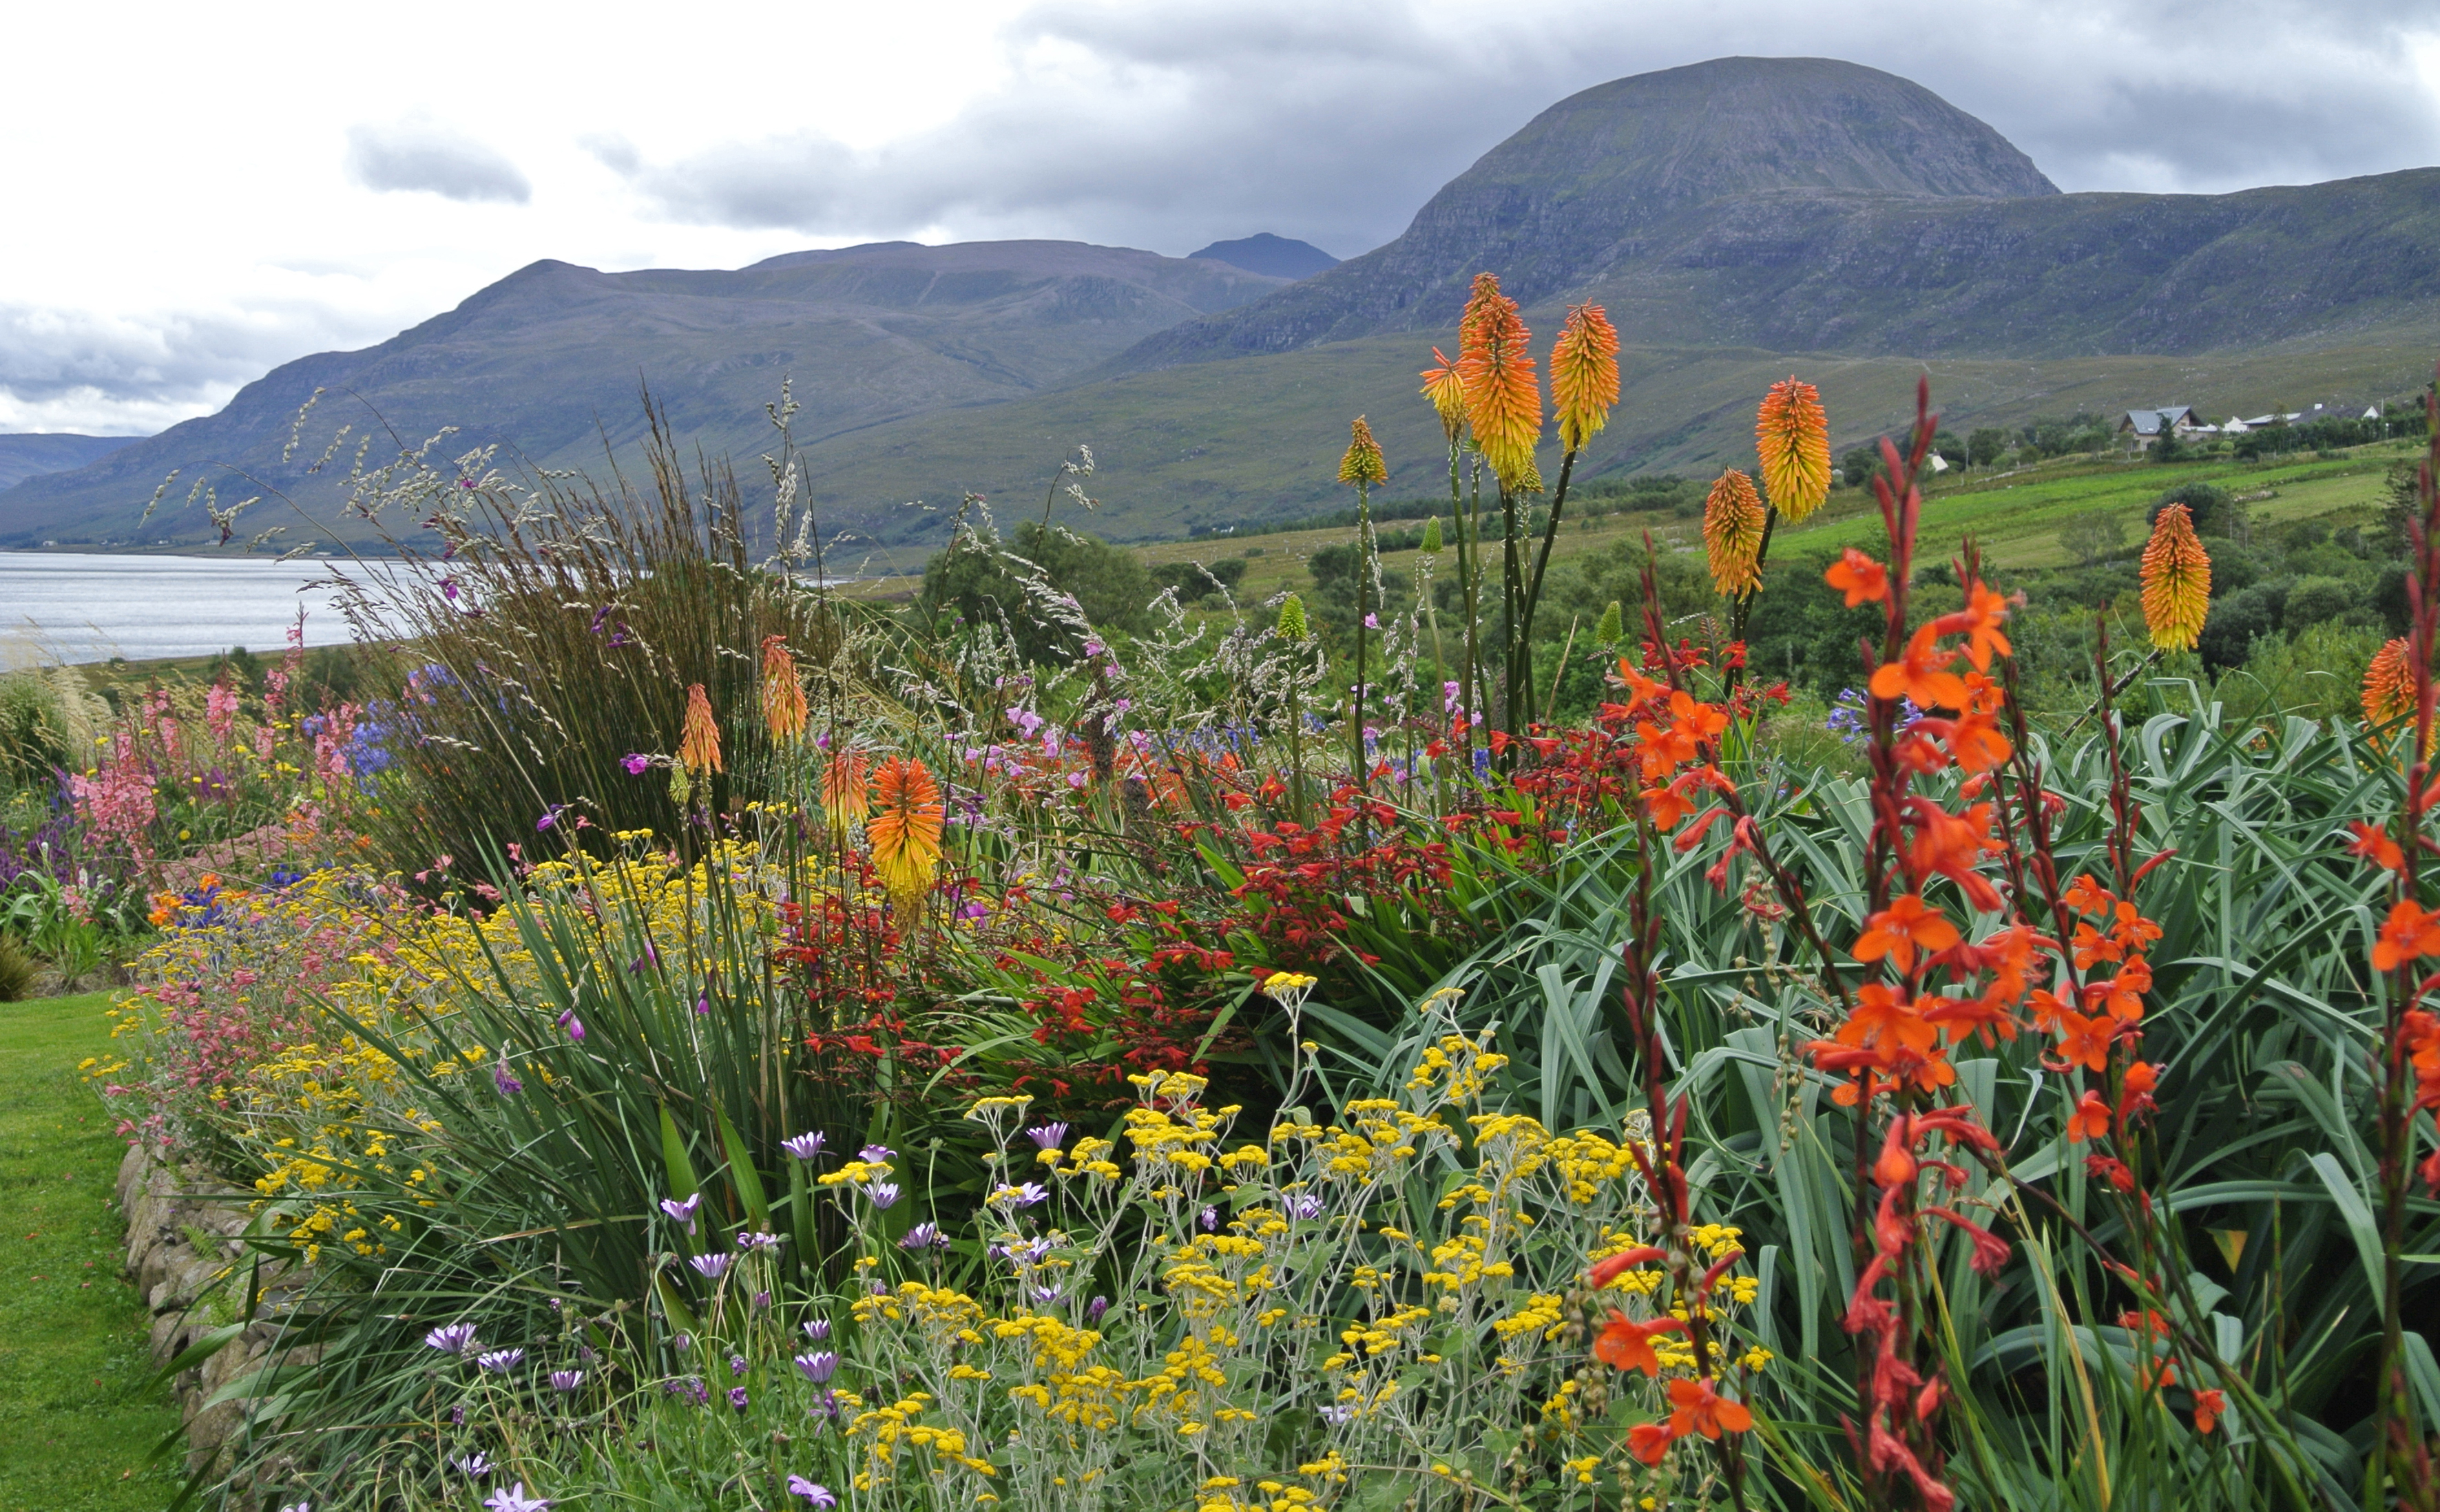 Close up of a section of the garden at 2, Durnamuck in Ross and Cromarty, Scotland with Little Loch Broom and the mountains in the background.